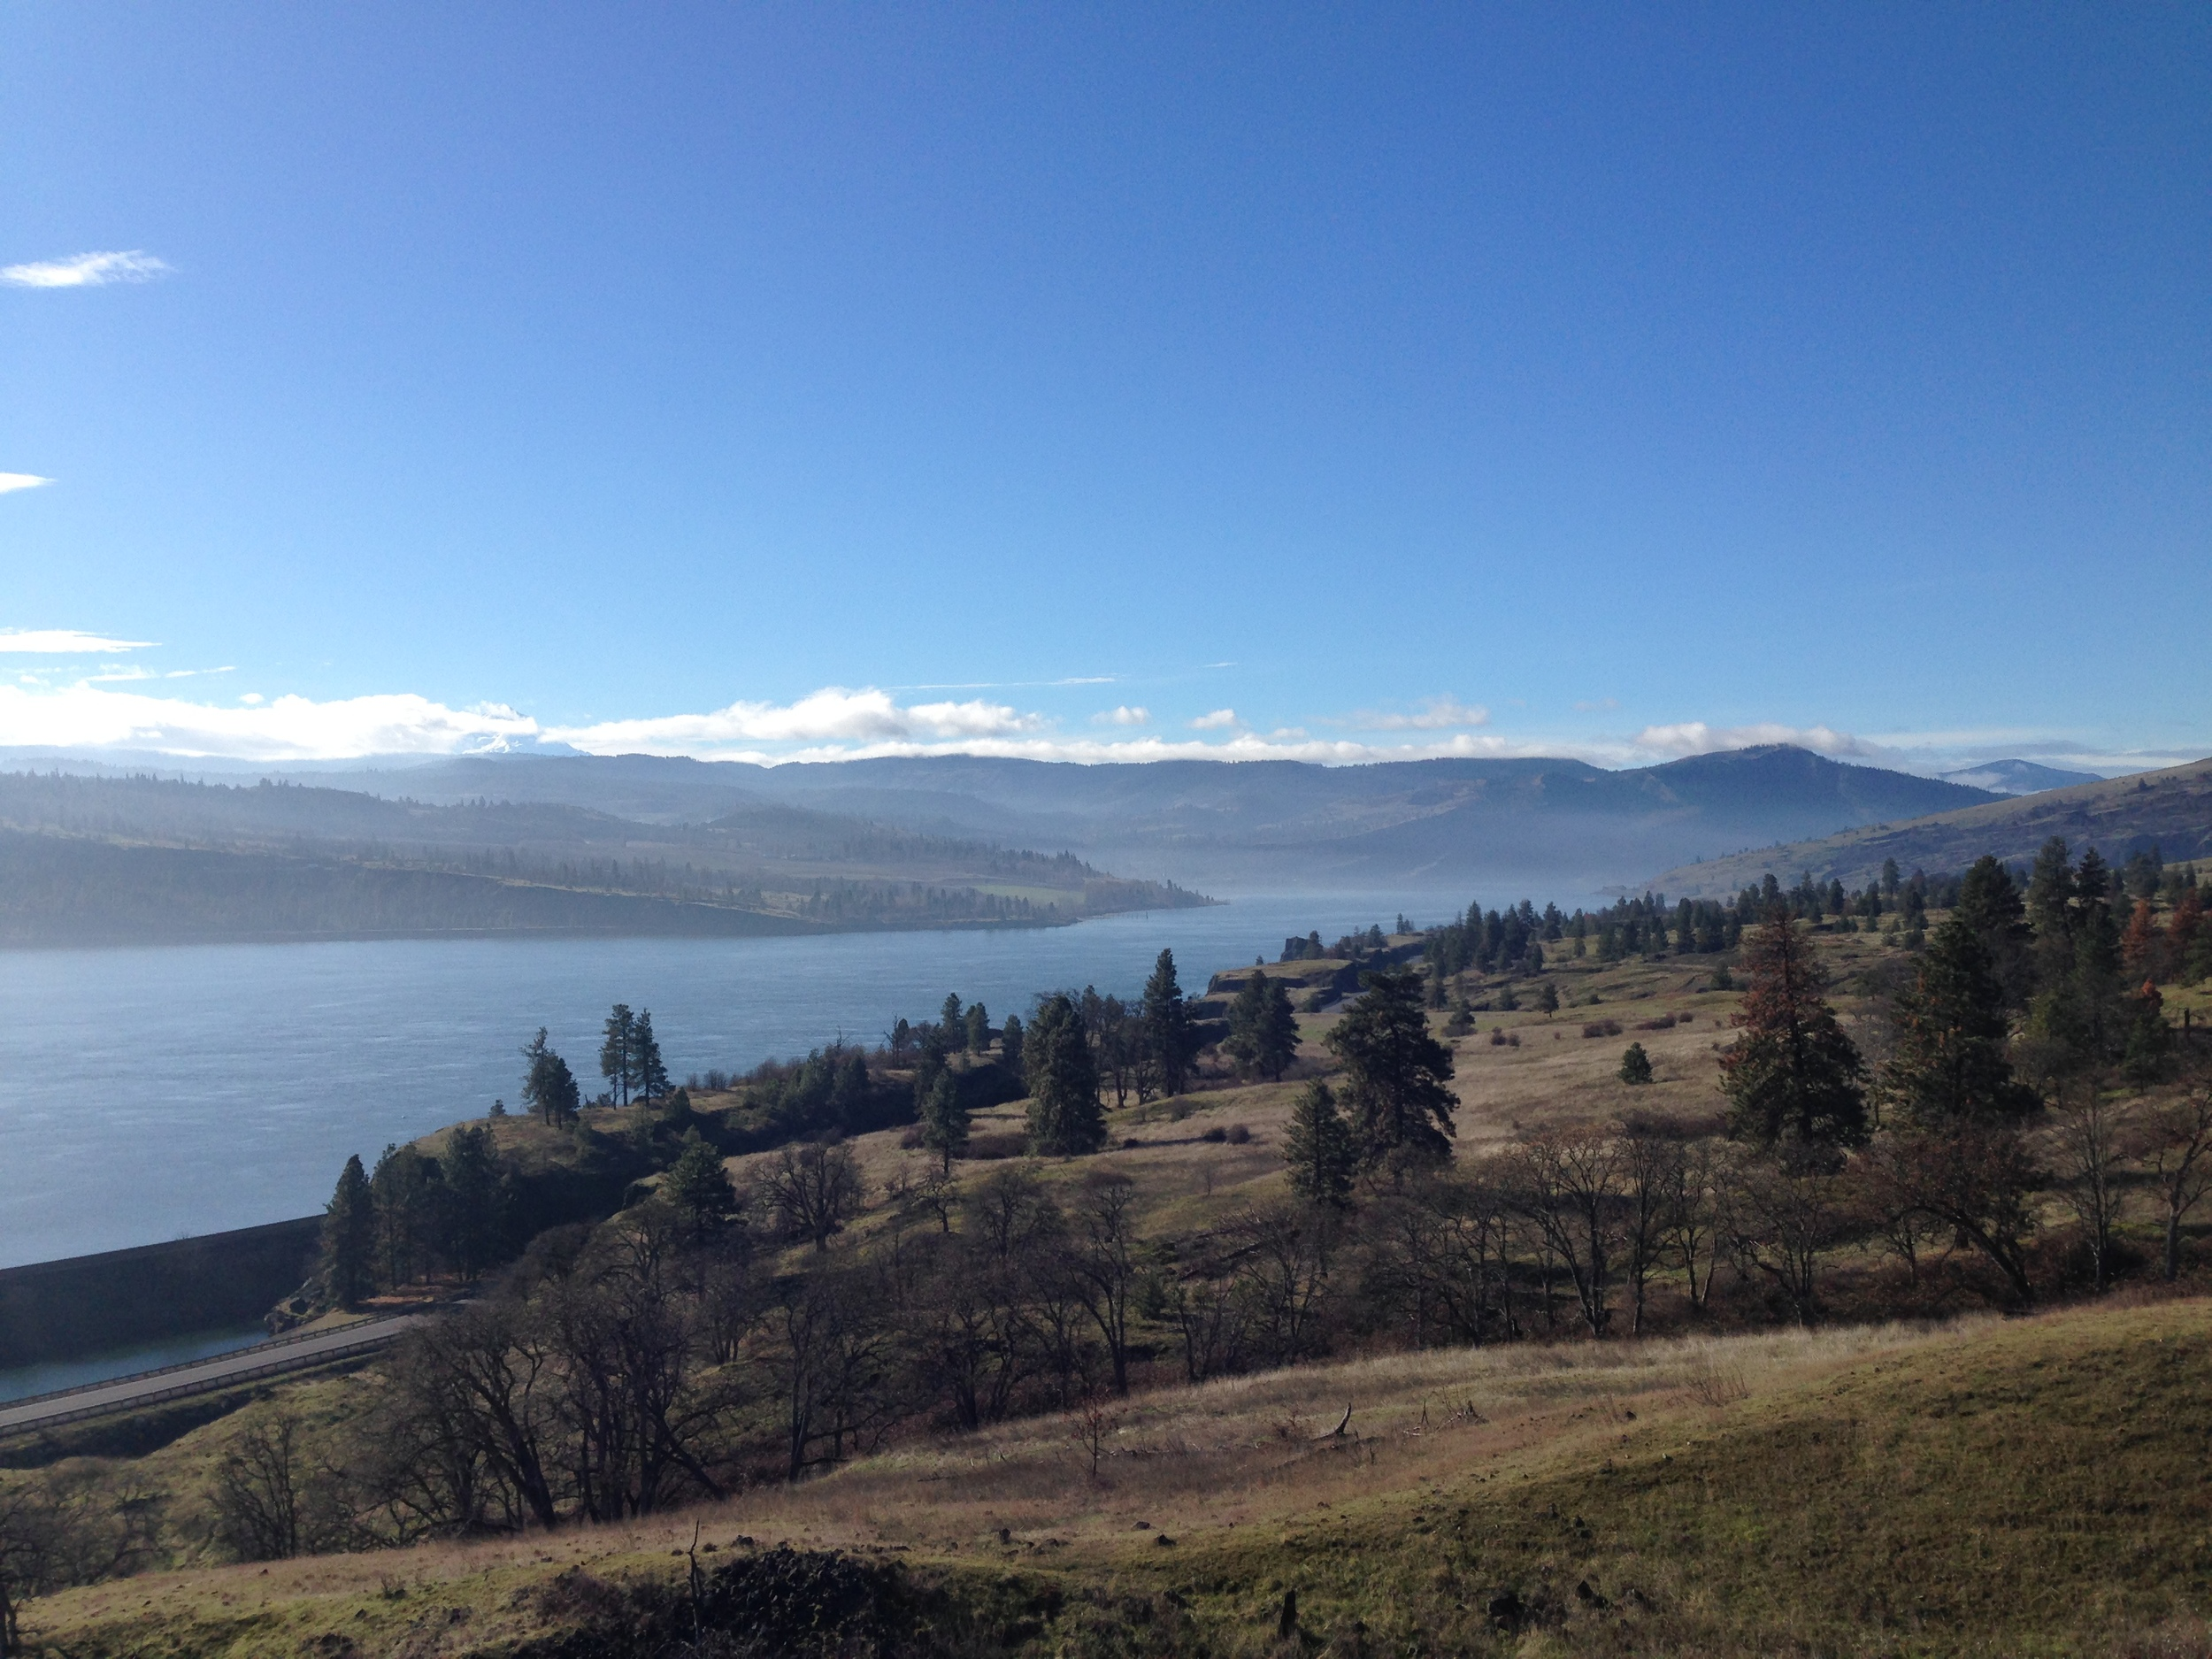 Looking west into the Columbia Gorge near Syncline Winery. Credit: Mat Elmore